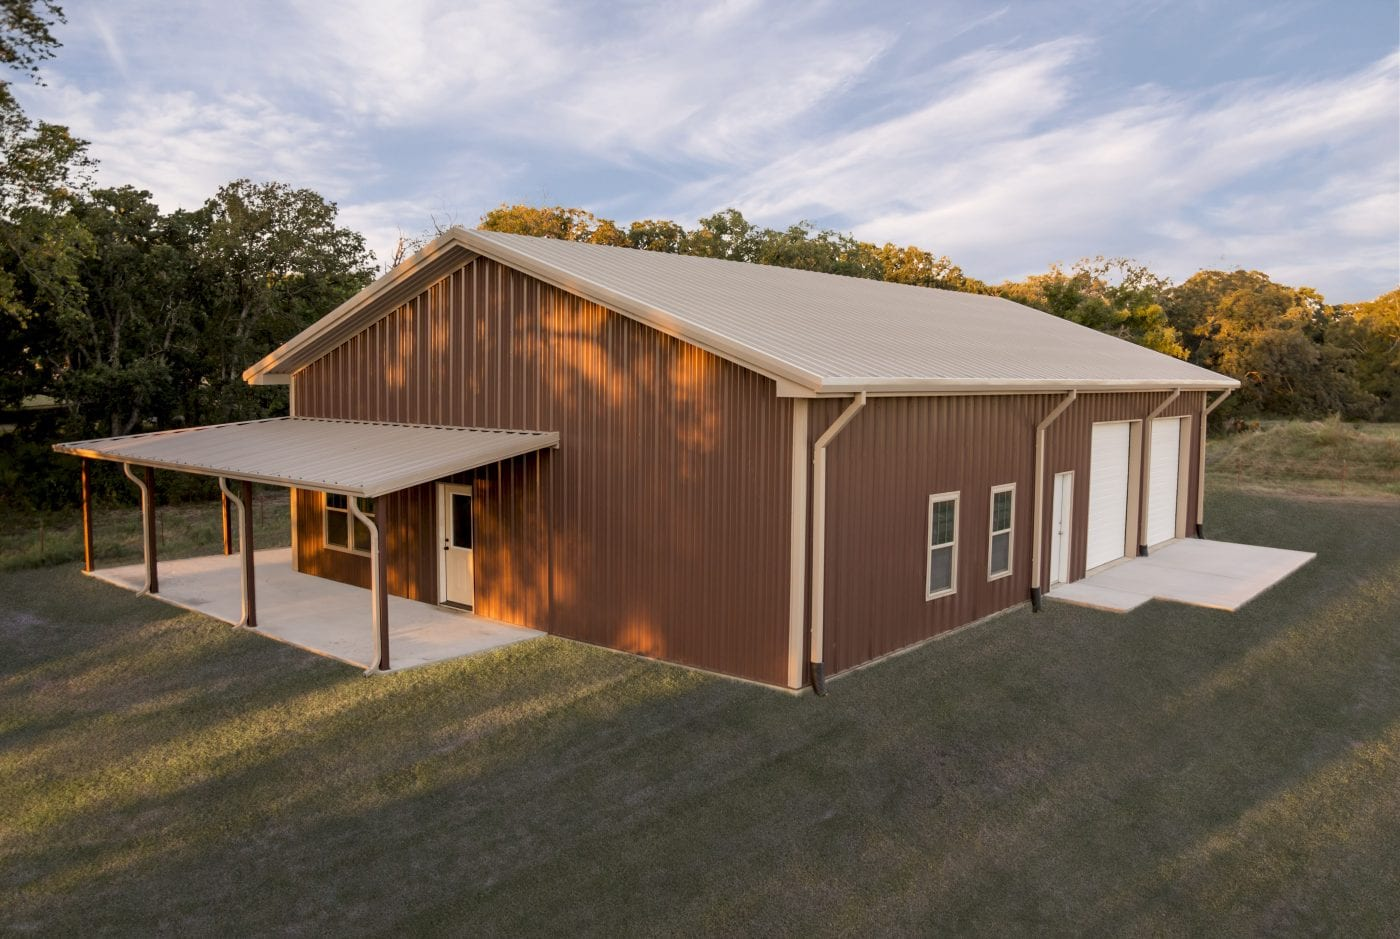 Mueller buildings custom metal steel frame homes for Metal barn homes cost